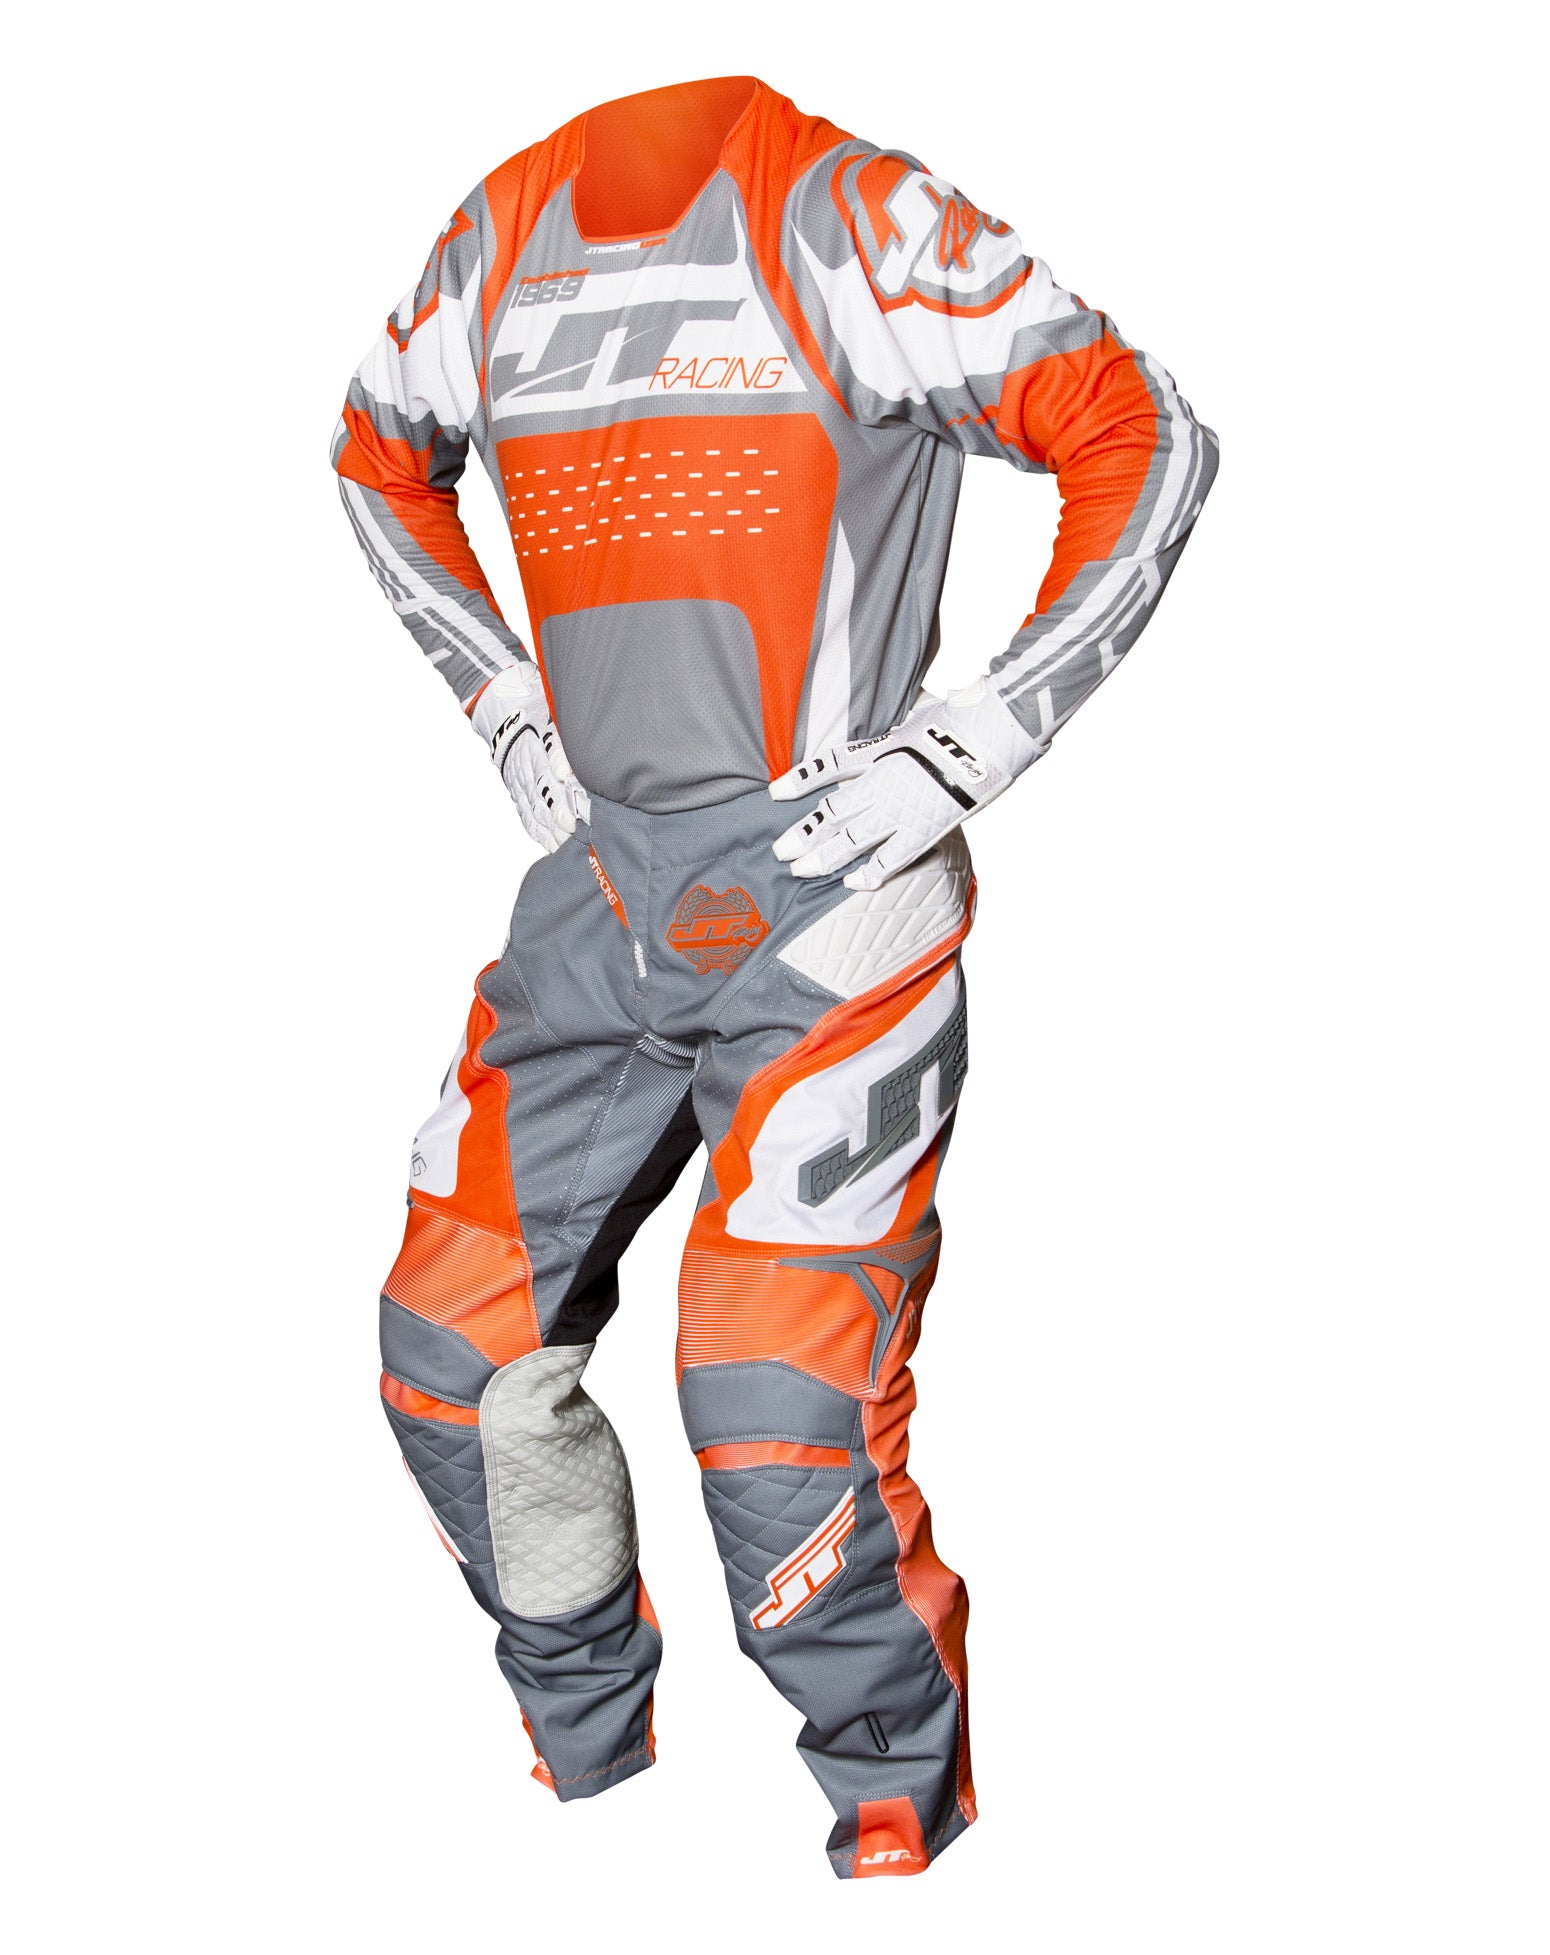 JT RACING USA-2017 ProTek Trophy pants, Grey/Orang